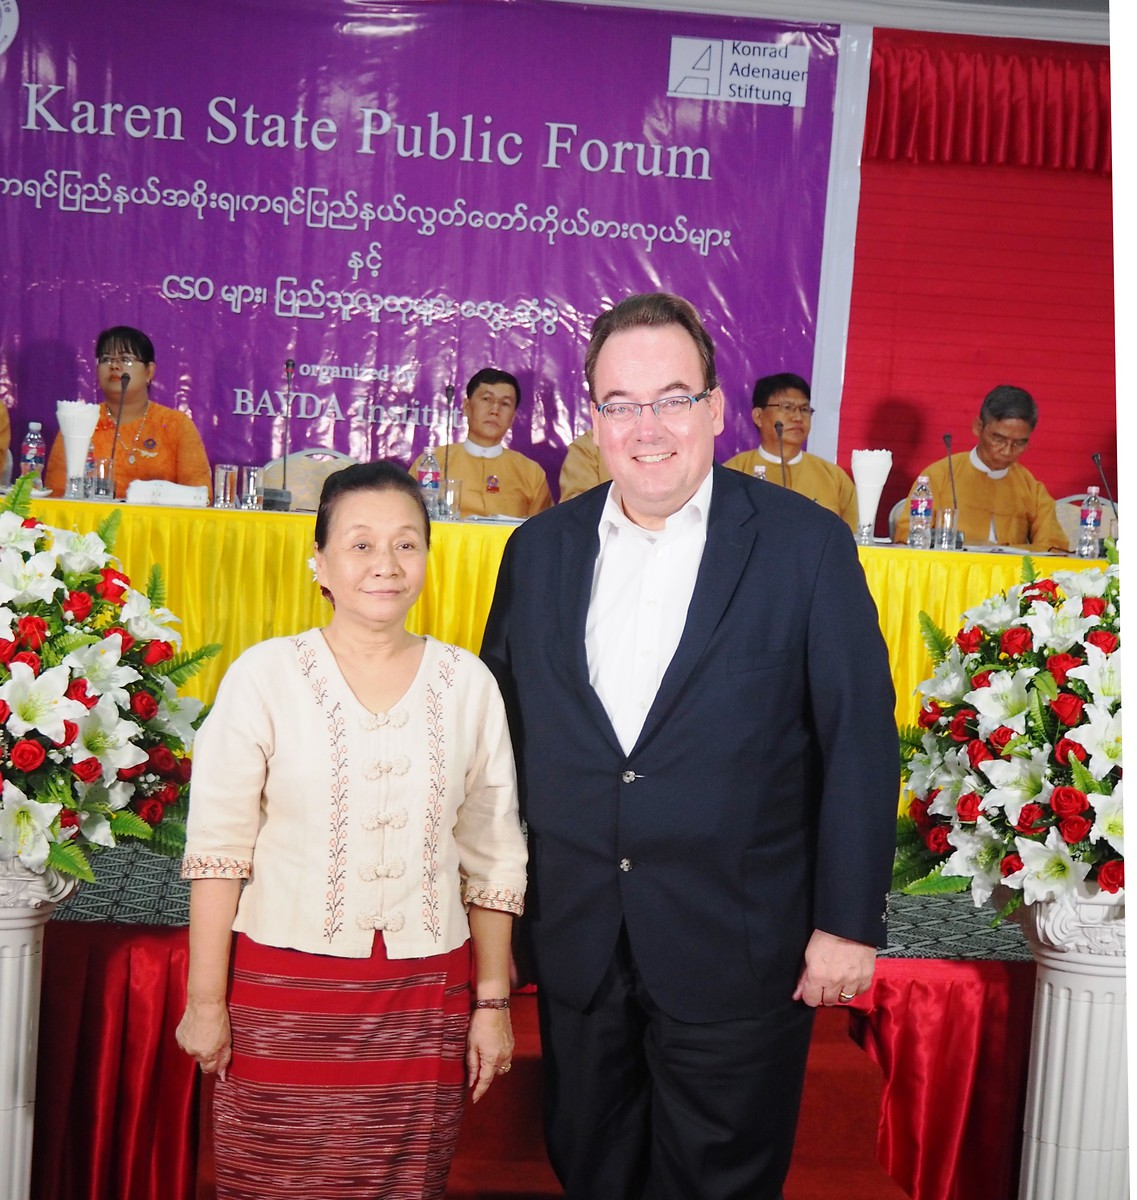 Chief Miníster of the Karen State, Daw Nang Khin Htwe Myint, with Dr. Norbert Eschborn, Resident Representative of KAS Myanmar